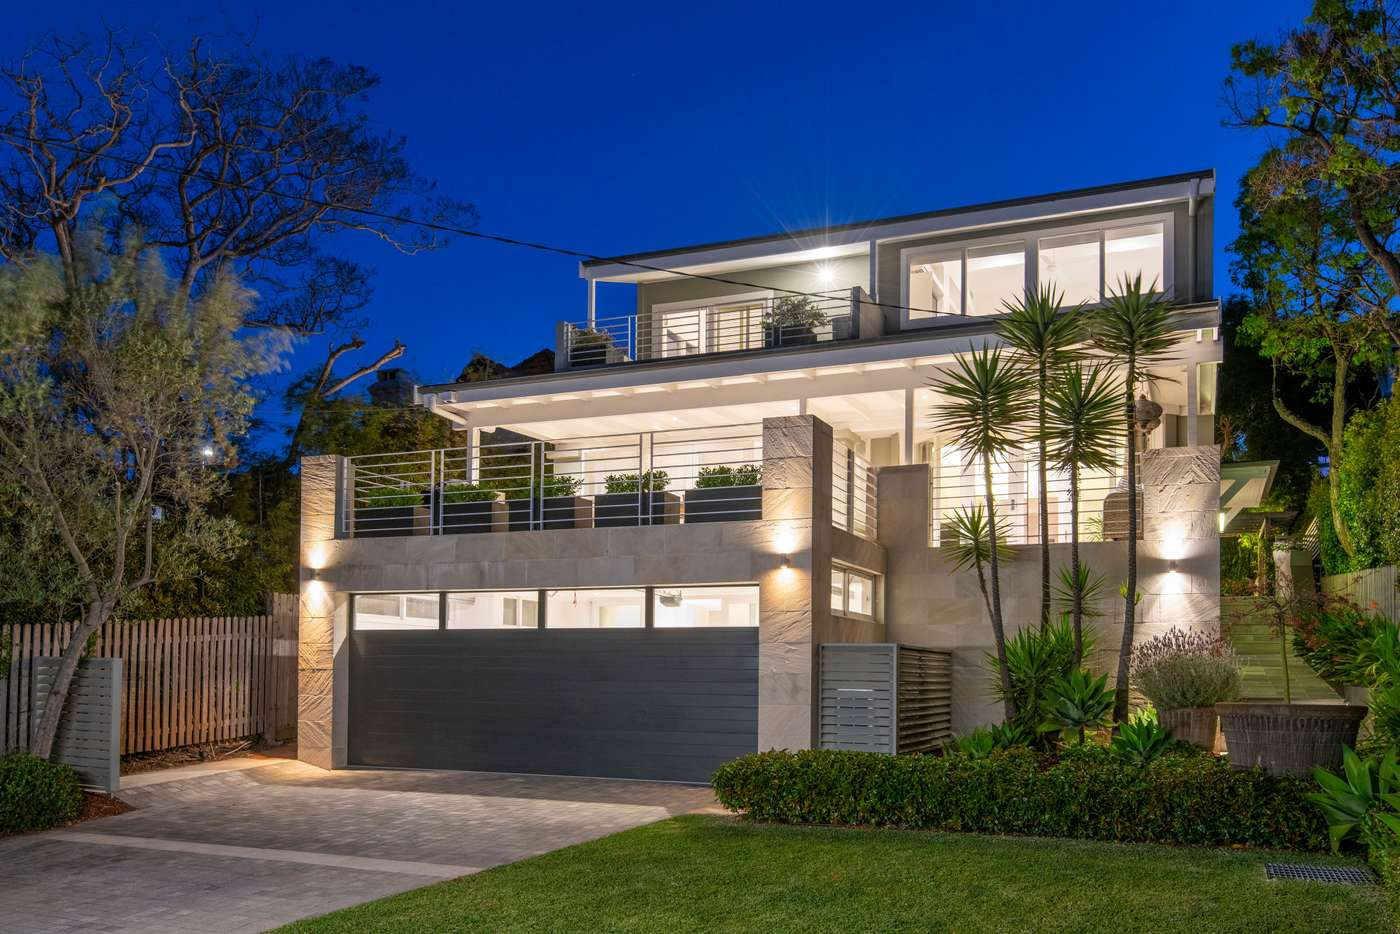 Main view of Homely house listing, 10 Middle Head Road, Mosman NSW 2088